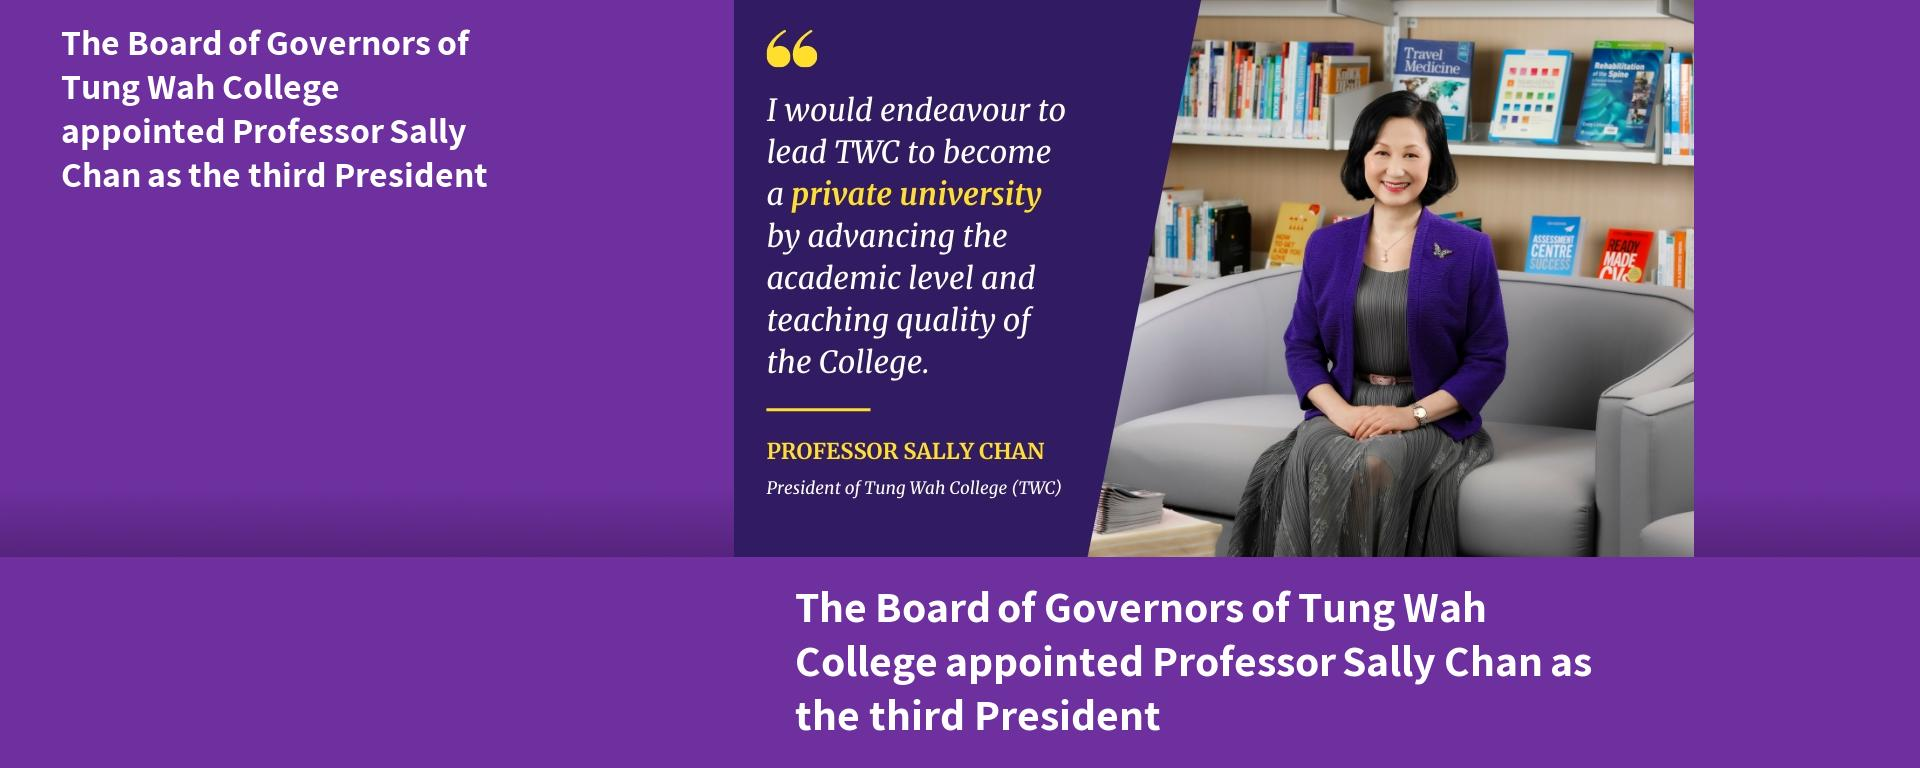 The Board of Governors of Tung Wah College appointed Professor Sally Chan as the third President